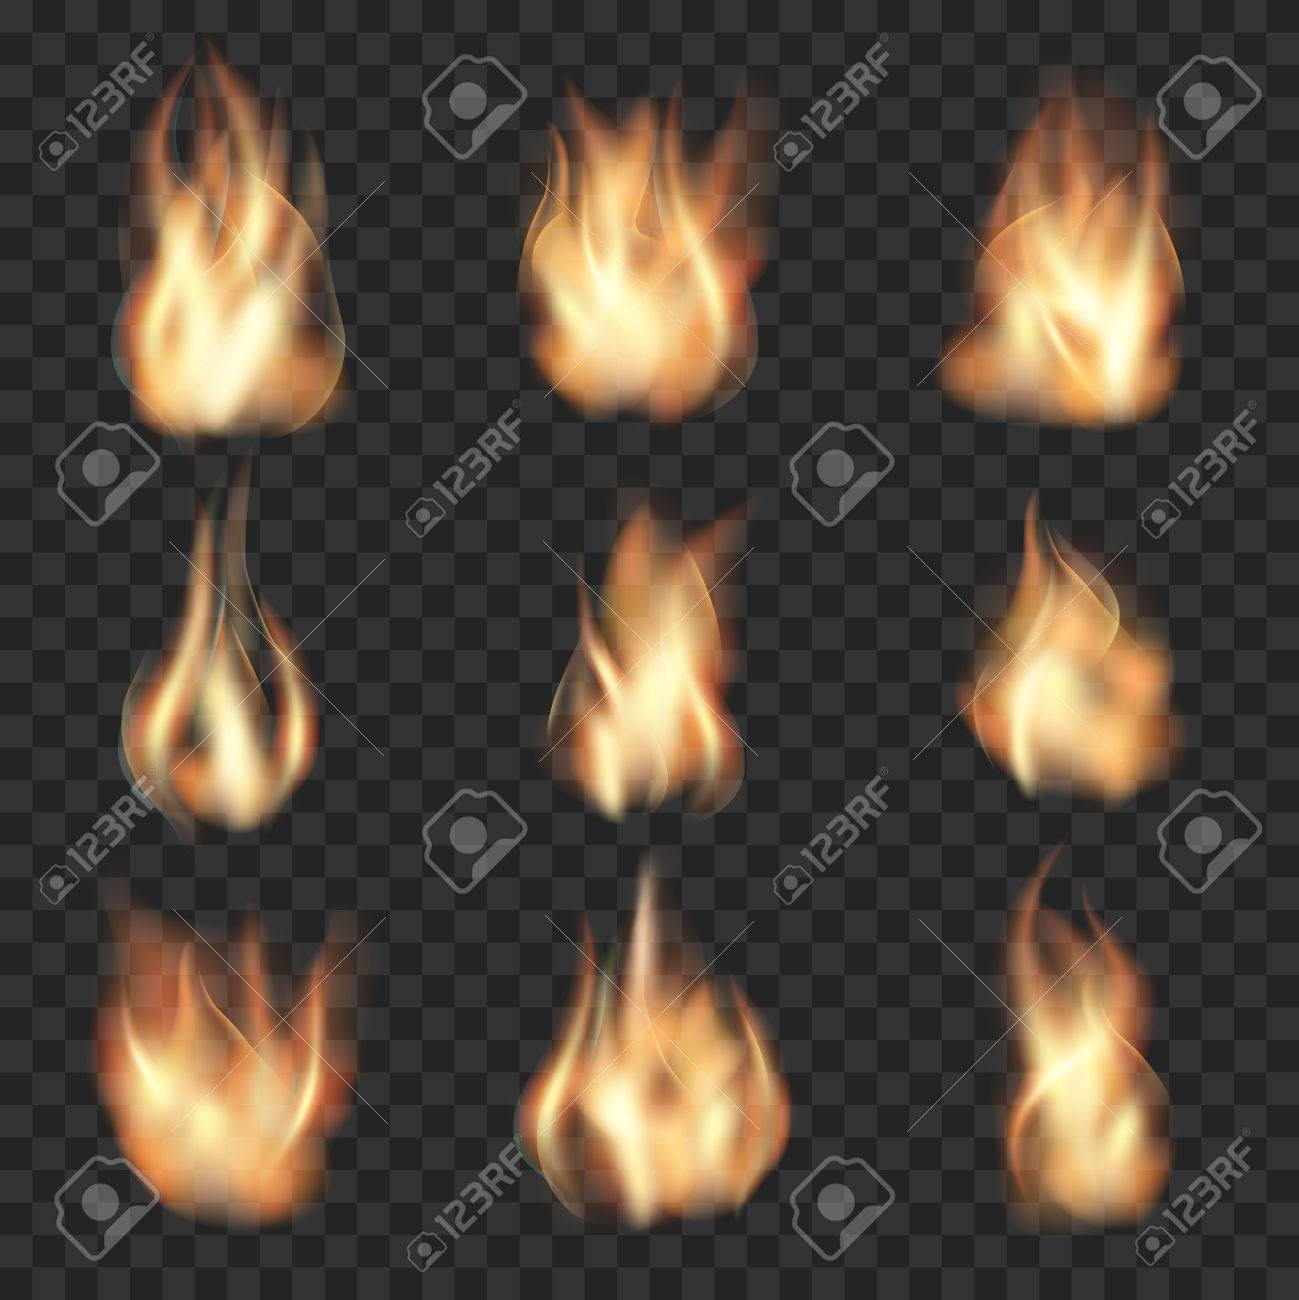 Realistic fire flames on checkered transparent background. Burn hot, heat flame, wildfire energy, vector illustration - 49781804